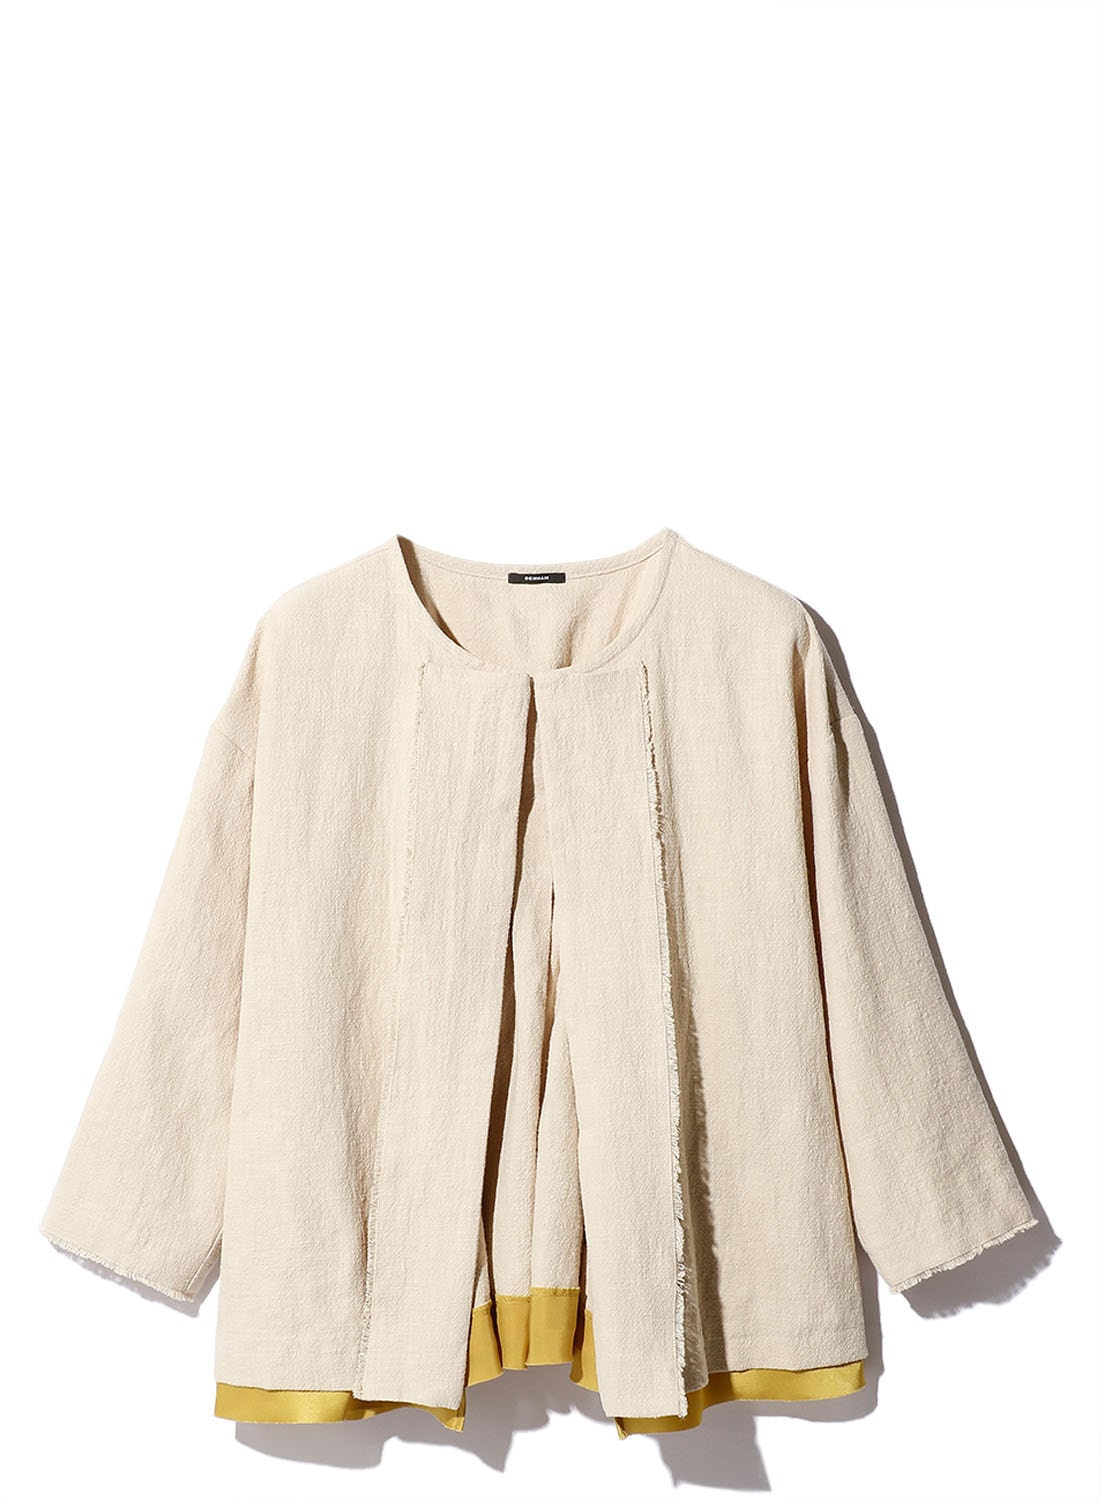 【日本限定】 SHINY LINEN JACKET